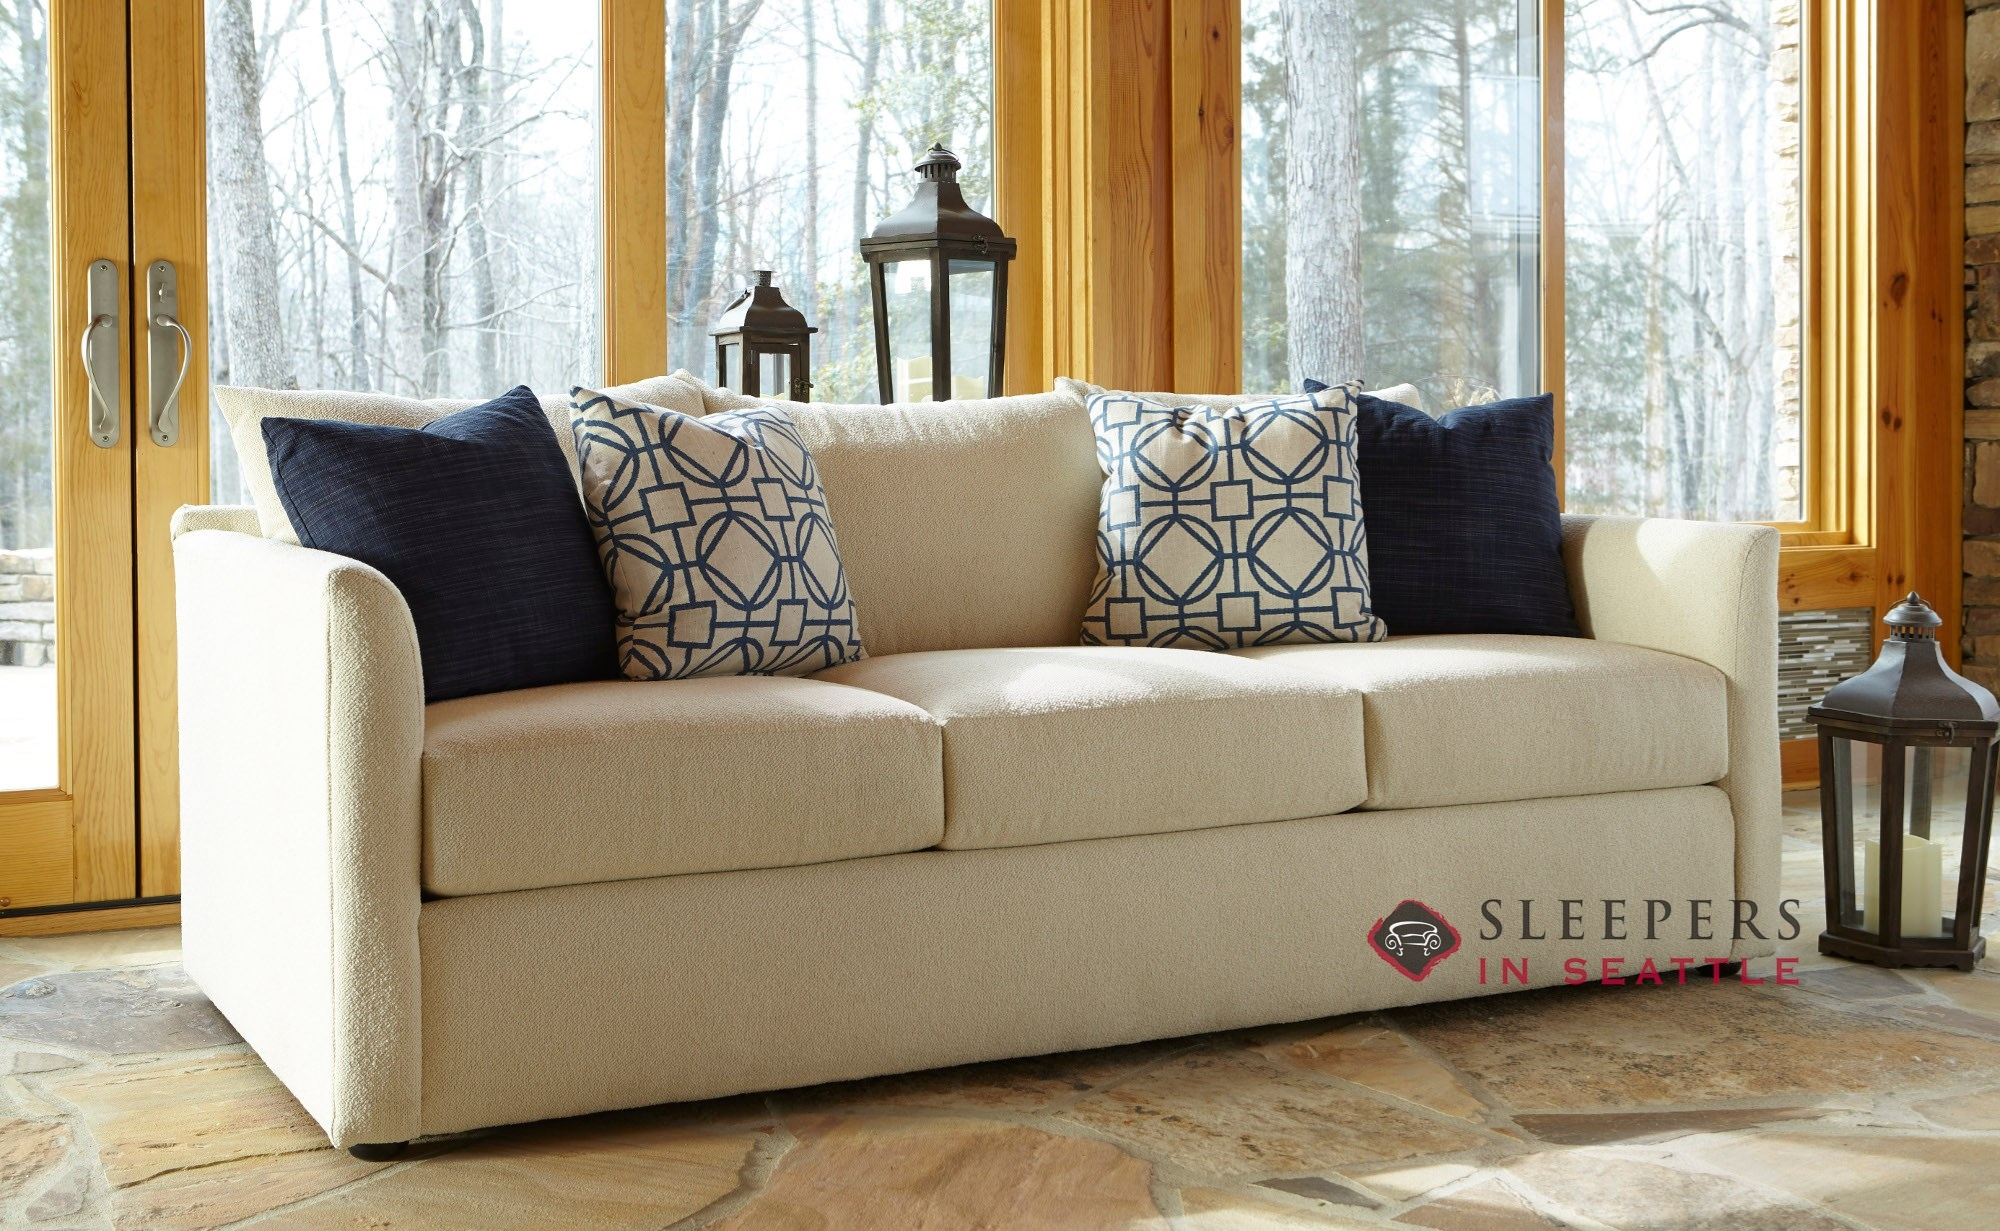 sleeper sofas atlanta sofia sofa bed customize and personalize aventura queen fabric by